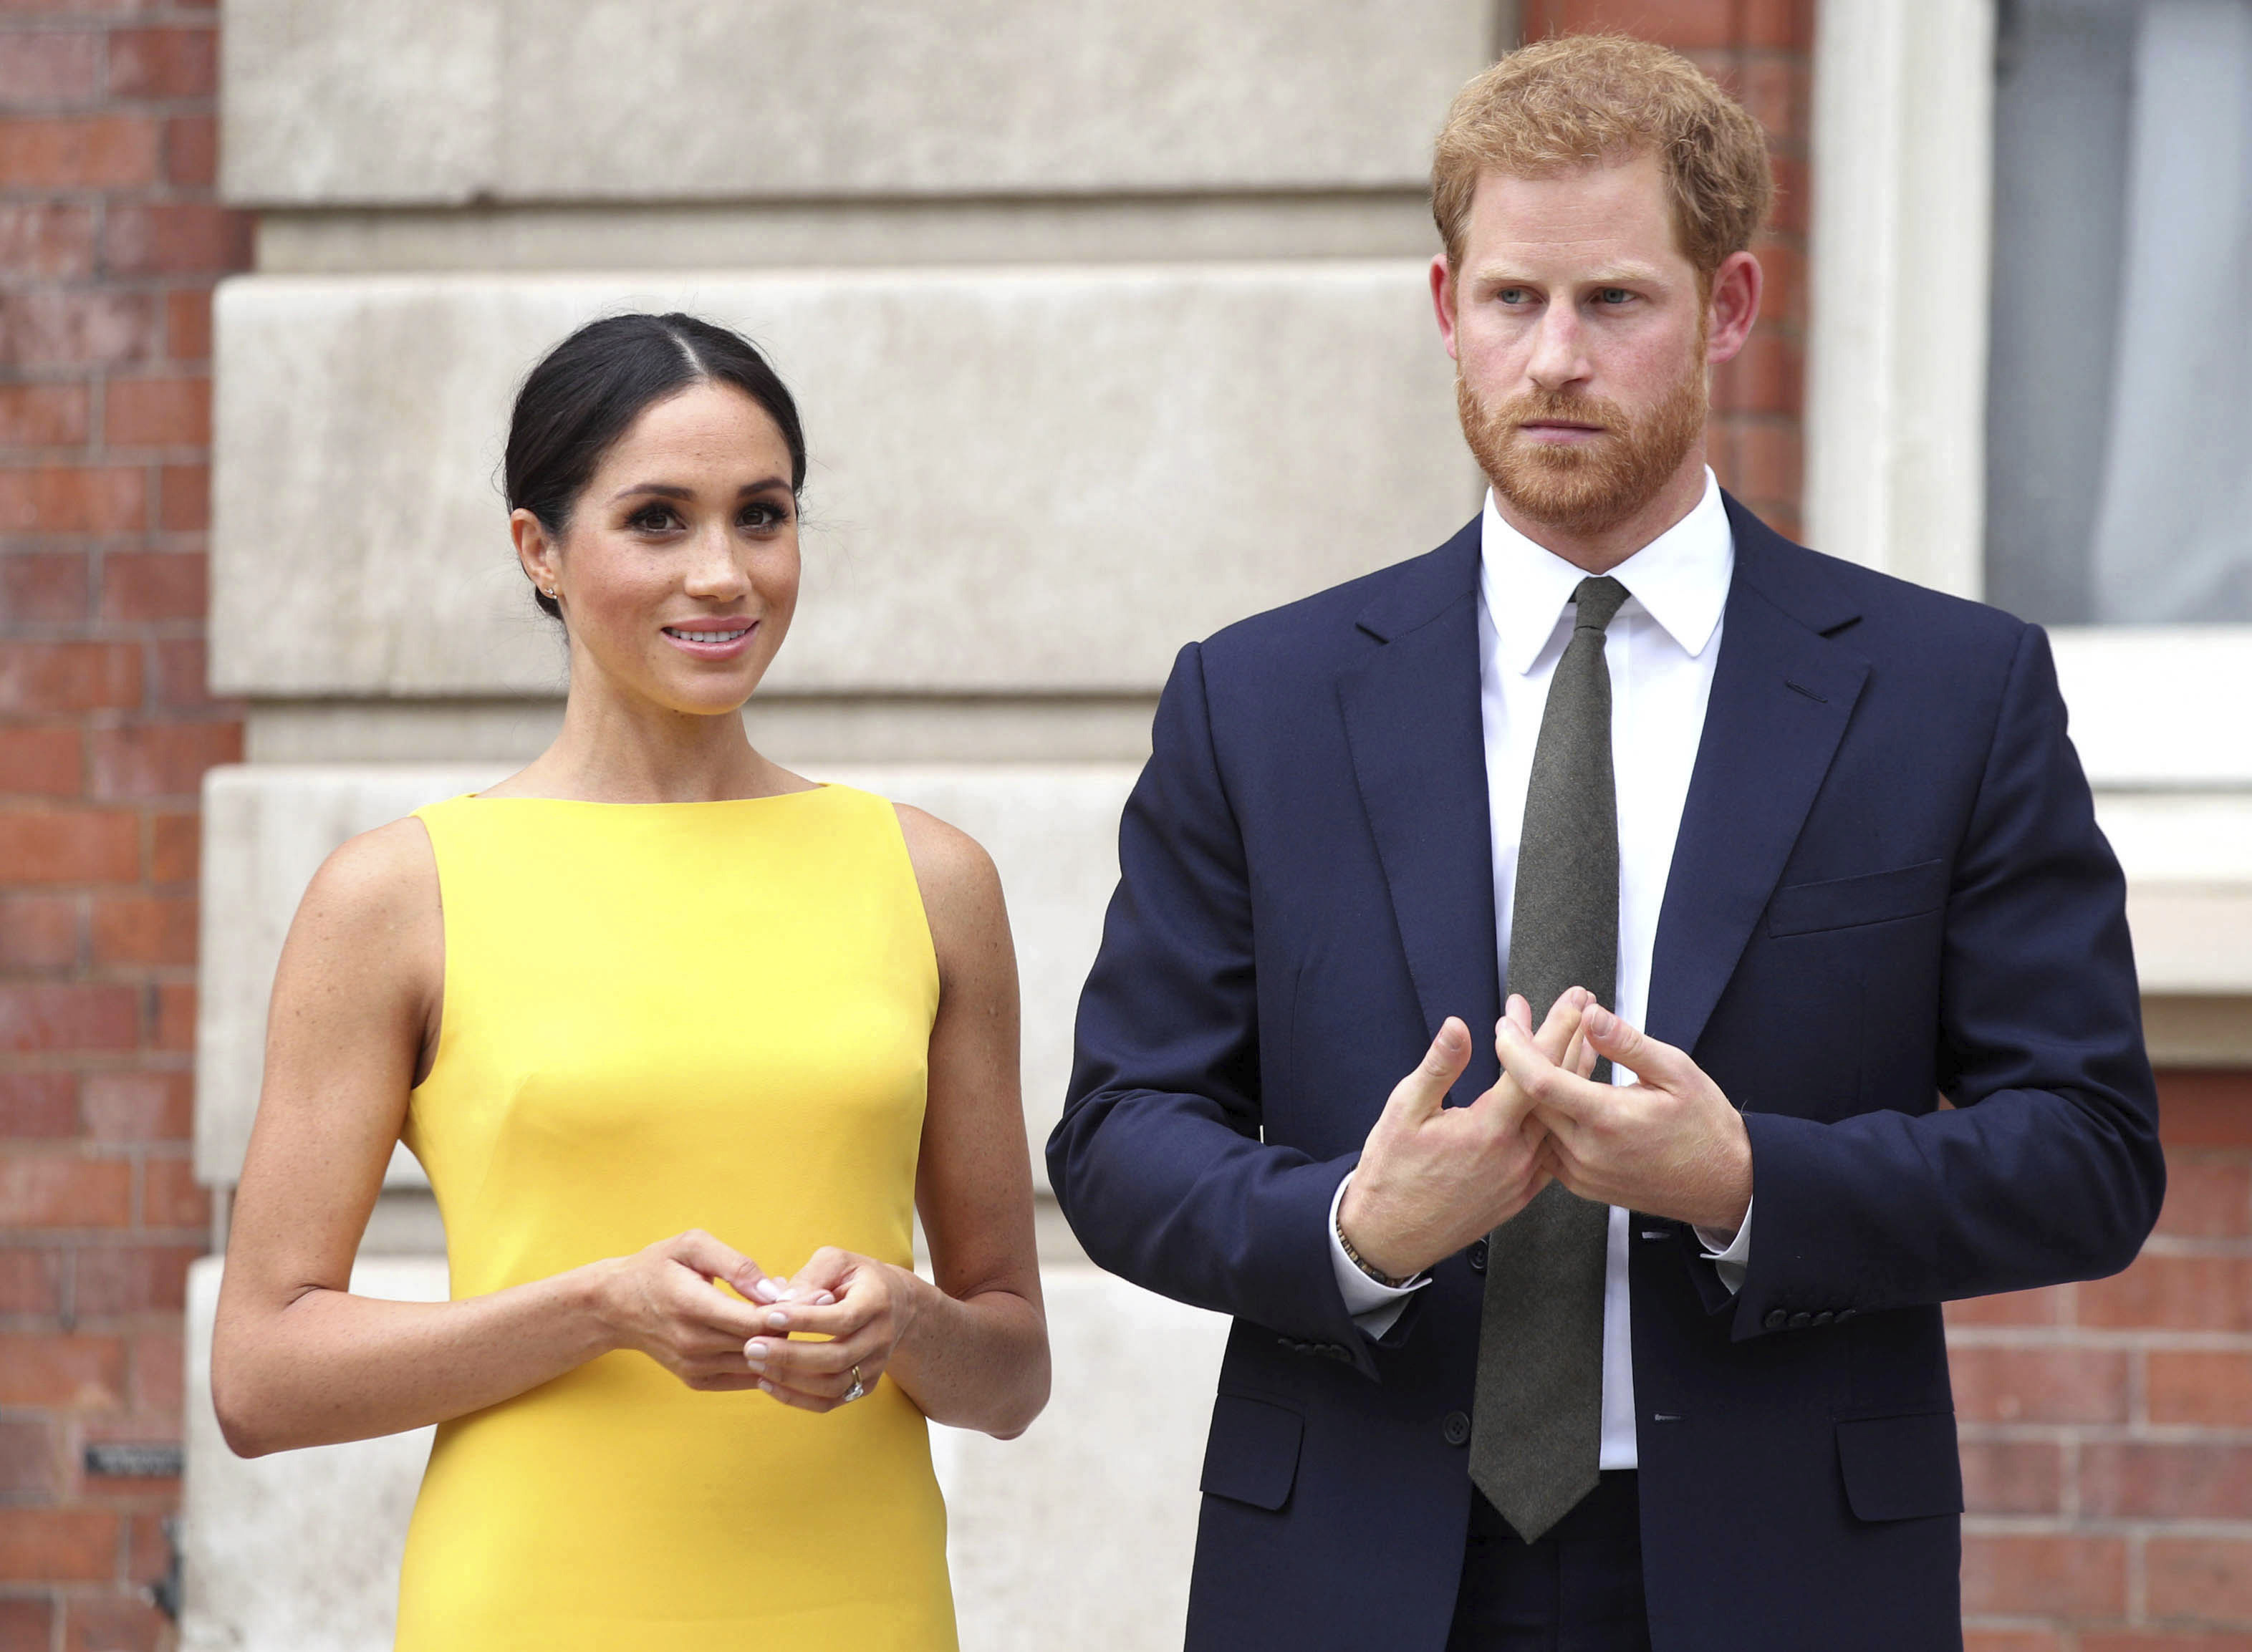 """February 20th 2020 - Prince Harry and Duchess Meghan will formally step down as senior royals on March 31st 2020 as the agreement reached between Queen Elizabeth II and the couple becomes official. - January 20th 2020 - Buckingham Palace has announced that Prince Harry and Duchess Meghan will no longer use """"royal highness"""" titles and will not receive public money for their royal duties. Additionally, as part of the terms of surrendering their royal responsibilities, Harry and Meghan will repay the $3.1 million cost of taxpayers' money that was spent renovating Frogmore Cottage - their home near Windsor Castle. - January 9th 2020 - Prince Harry The Duke of Sussex and Duchess Meghan of Sussex intend to step back their duties and responsibilities as senior members of the British Royal Family. - File Photo by: zz/KGC-375/STAR MAX/IPx 2018 7/5/18 Prince Harry The Duke of Sussex and Meghan Markle The Duchess of Sussex attend the Your Commonwealth Youth Challenge reception at Marlborough House. (London, England, UK)"""